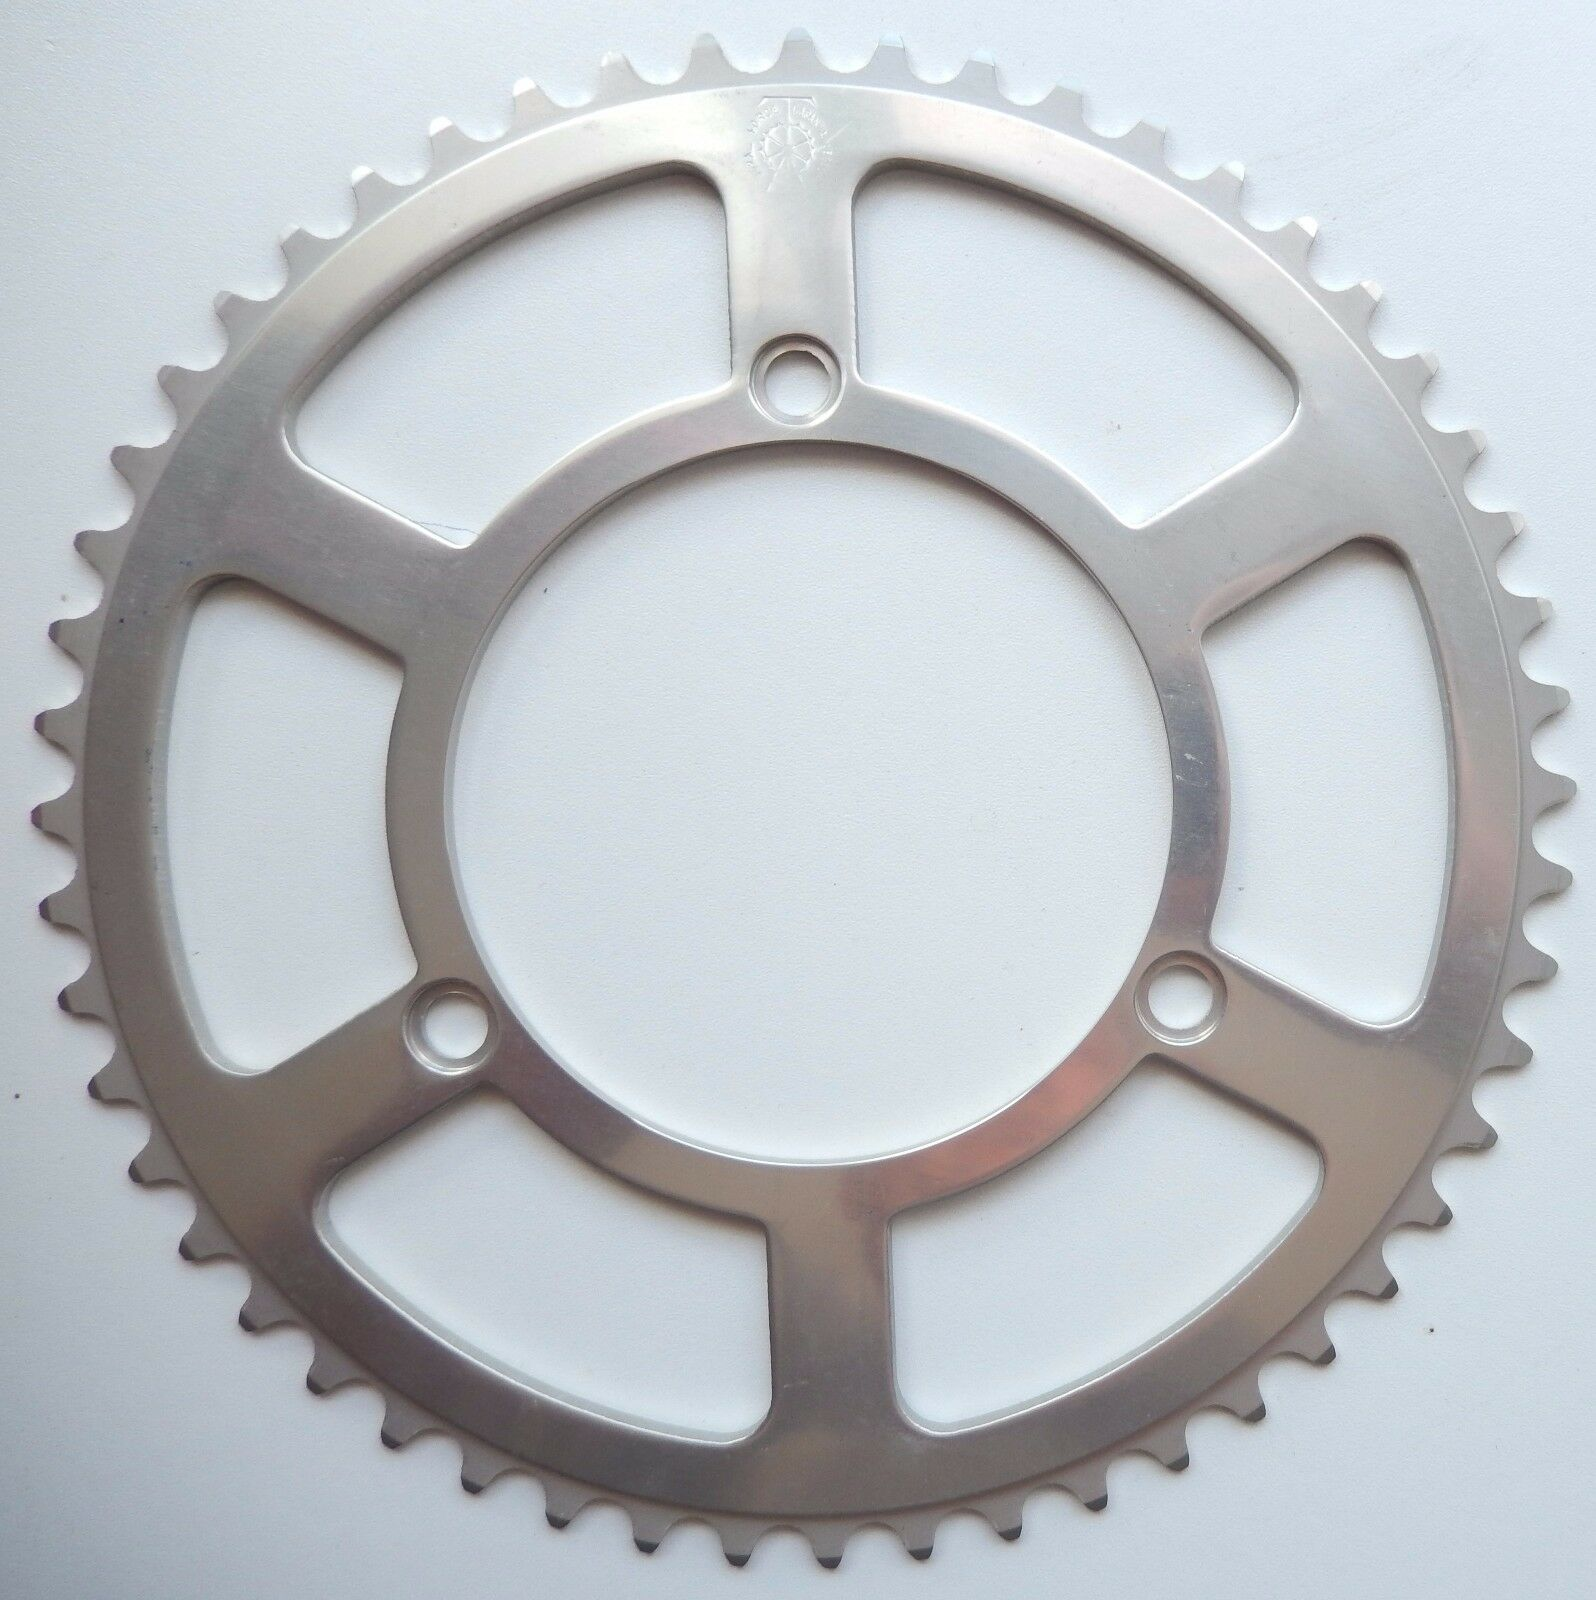 NOS  VINTAGE T.A TEVANO 3 holes CHAINRING  52 - PLATEAU (52a)  big discount prices